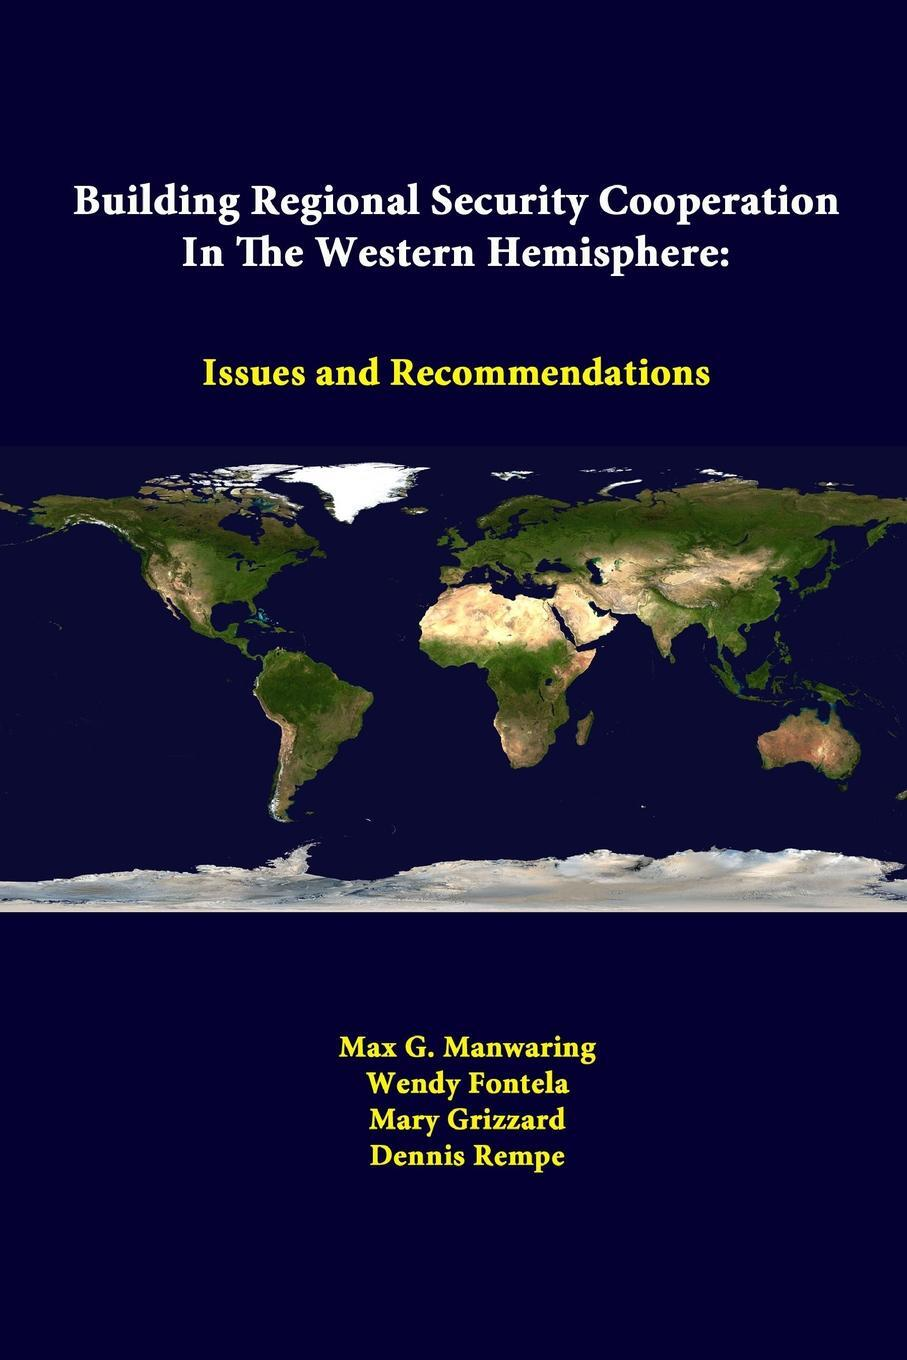 Building Regional Security Cooperation In The Western Hemisphere. Issues And Recommendations